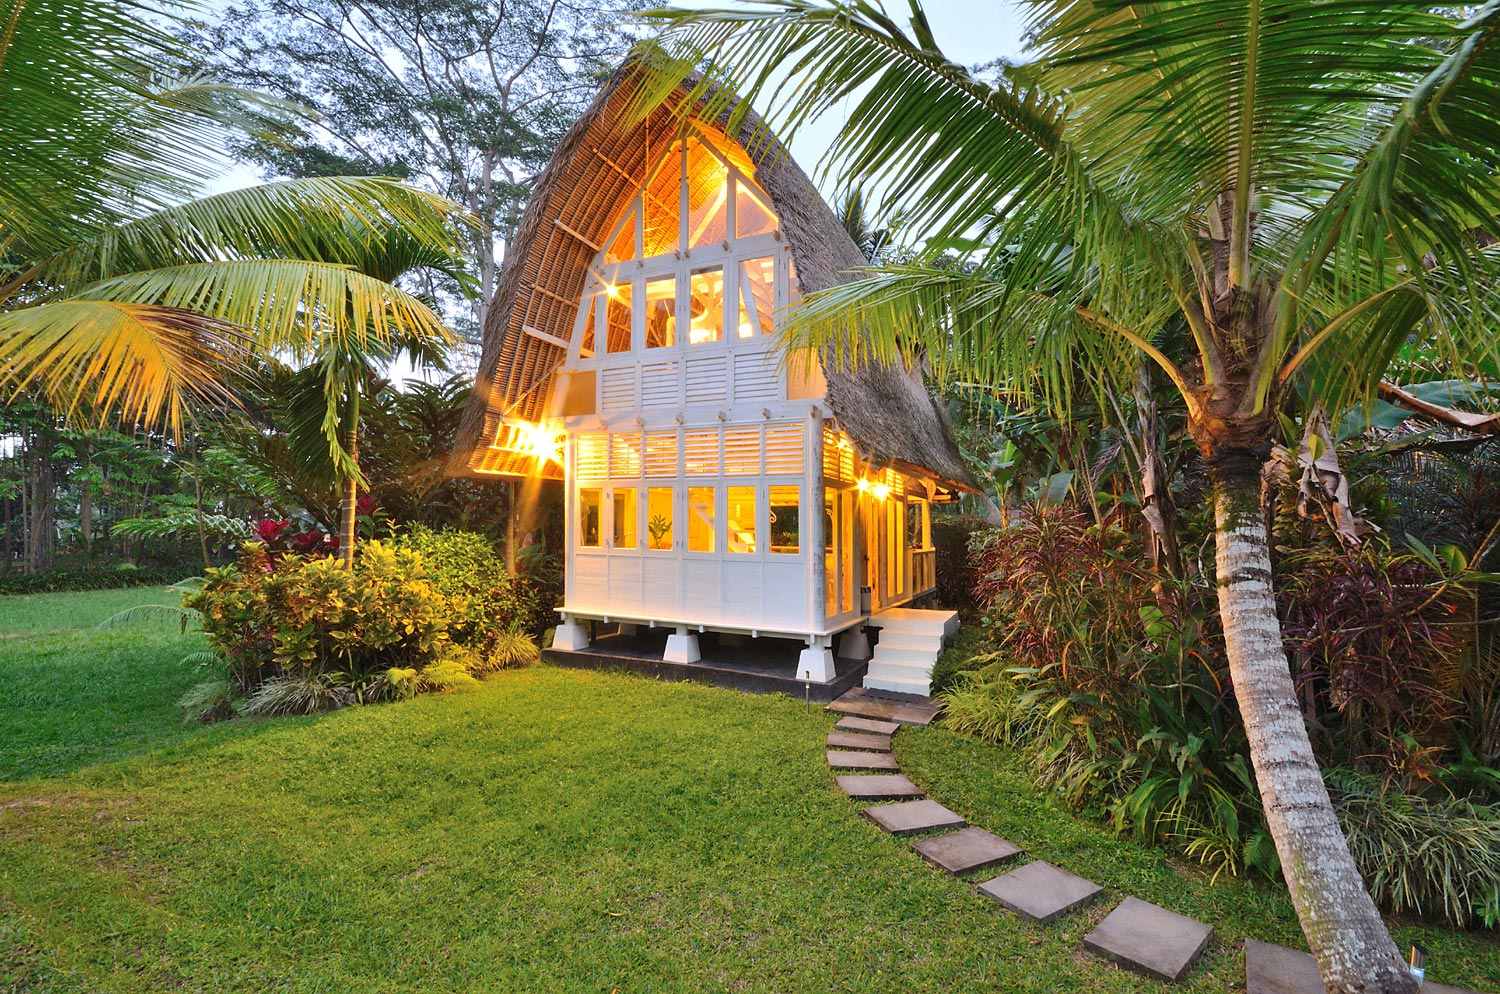 Honeymooners and lovers cherish the romance of The White Elephant, one of the villa's two bedroom bales.